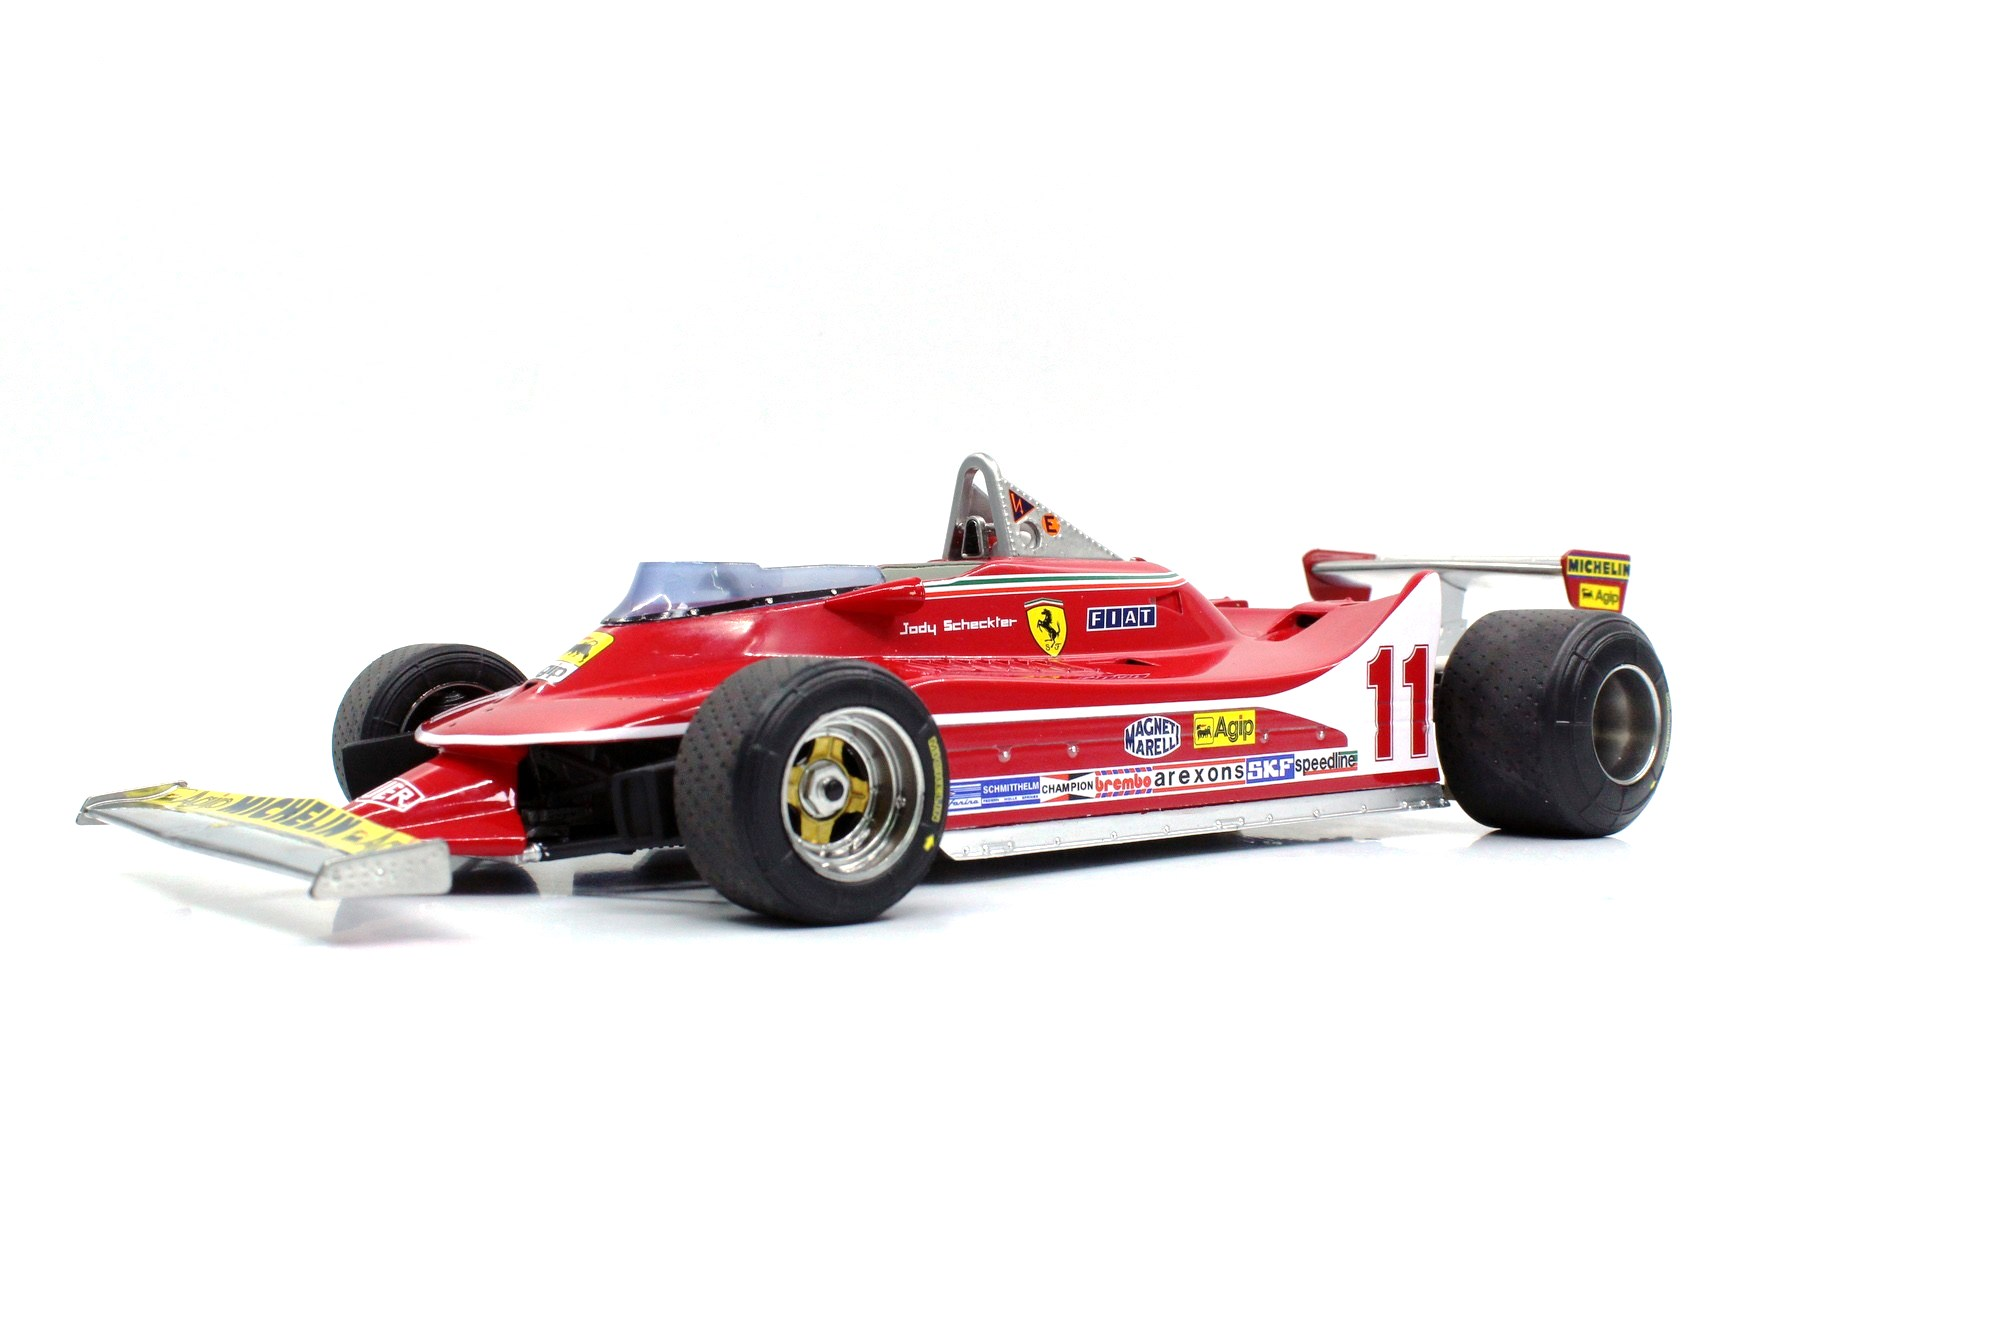 Ferrari F1 312 T4 #11 J.Scheckter 1979 World Champion 1:18 GP Replicas